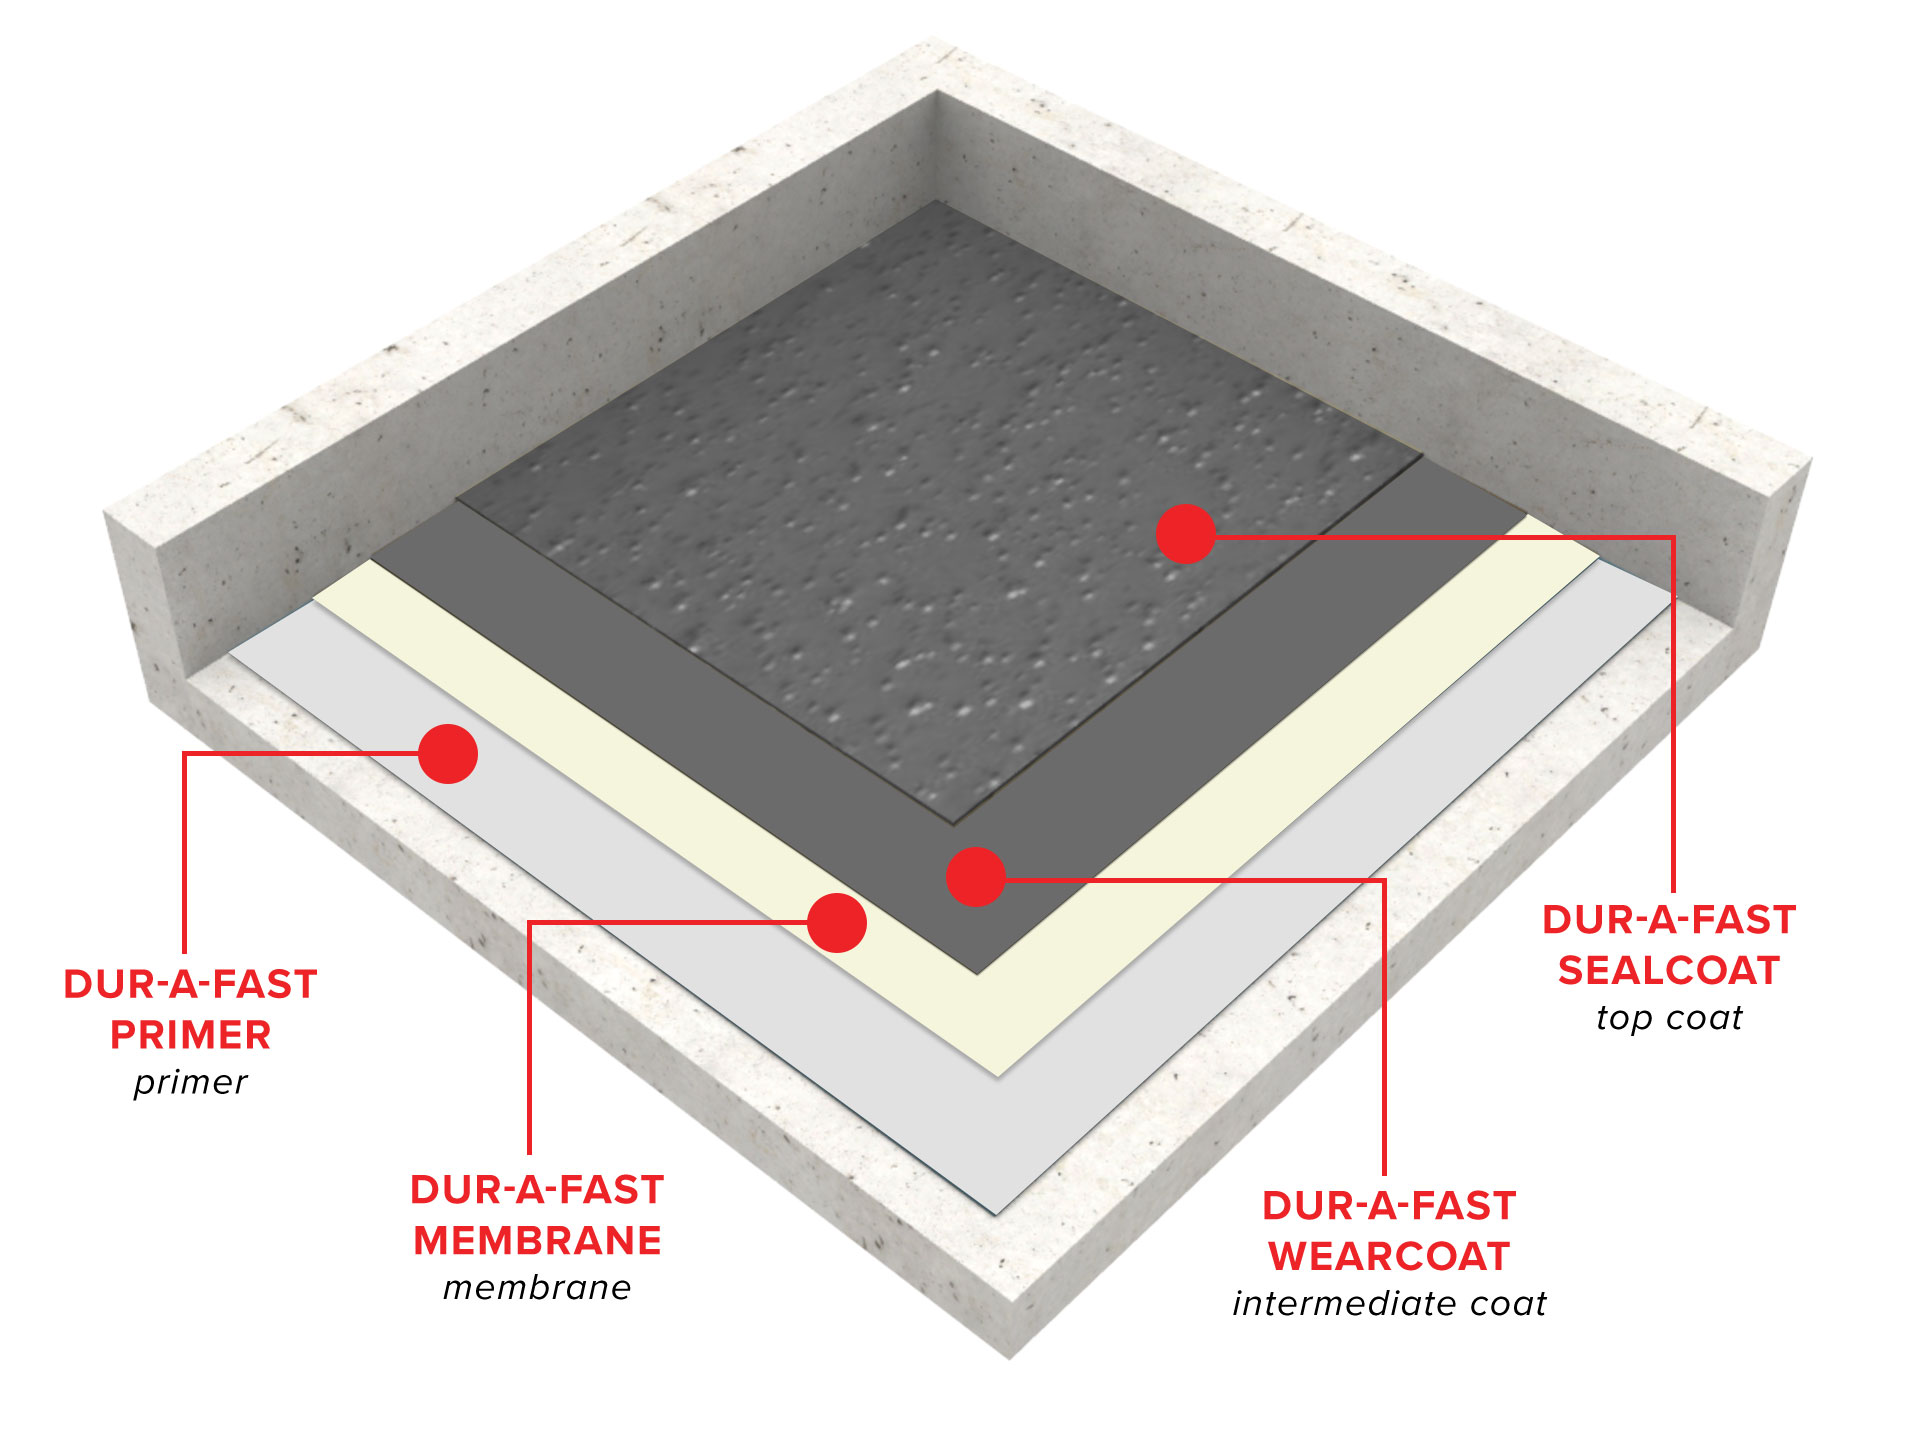 dur-a-fast-extreme-traffic-bearing-vehicular-waterproofing-system1568212028.jpg